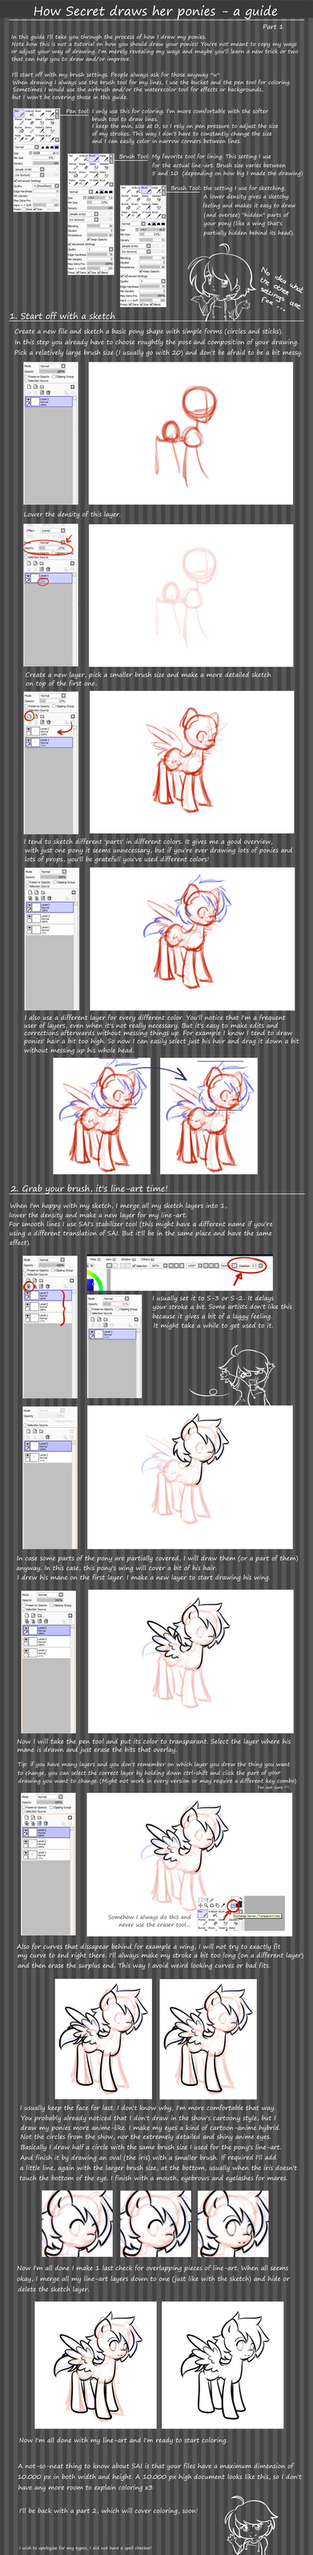 Pony tutorial: part 1 - line-art by secret-pony